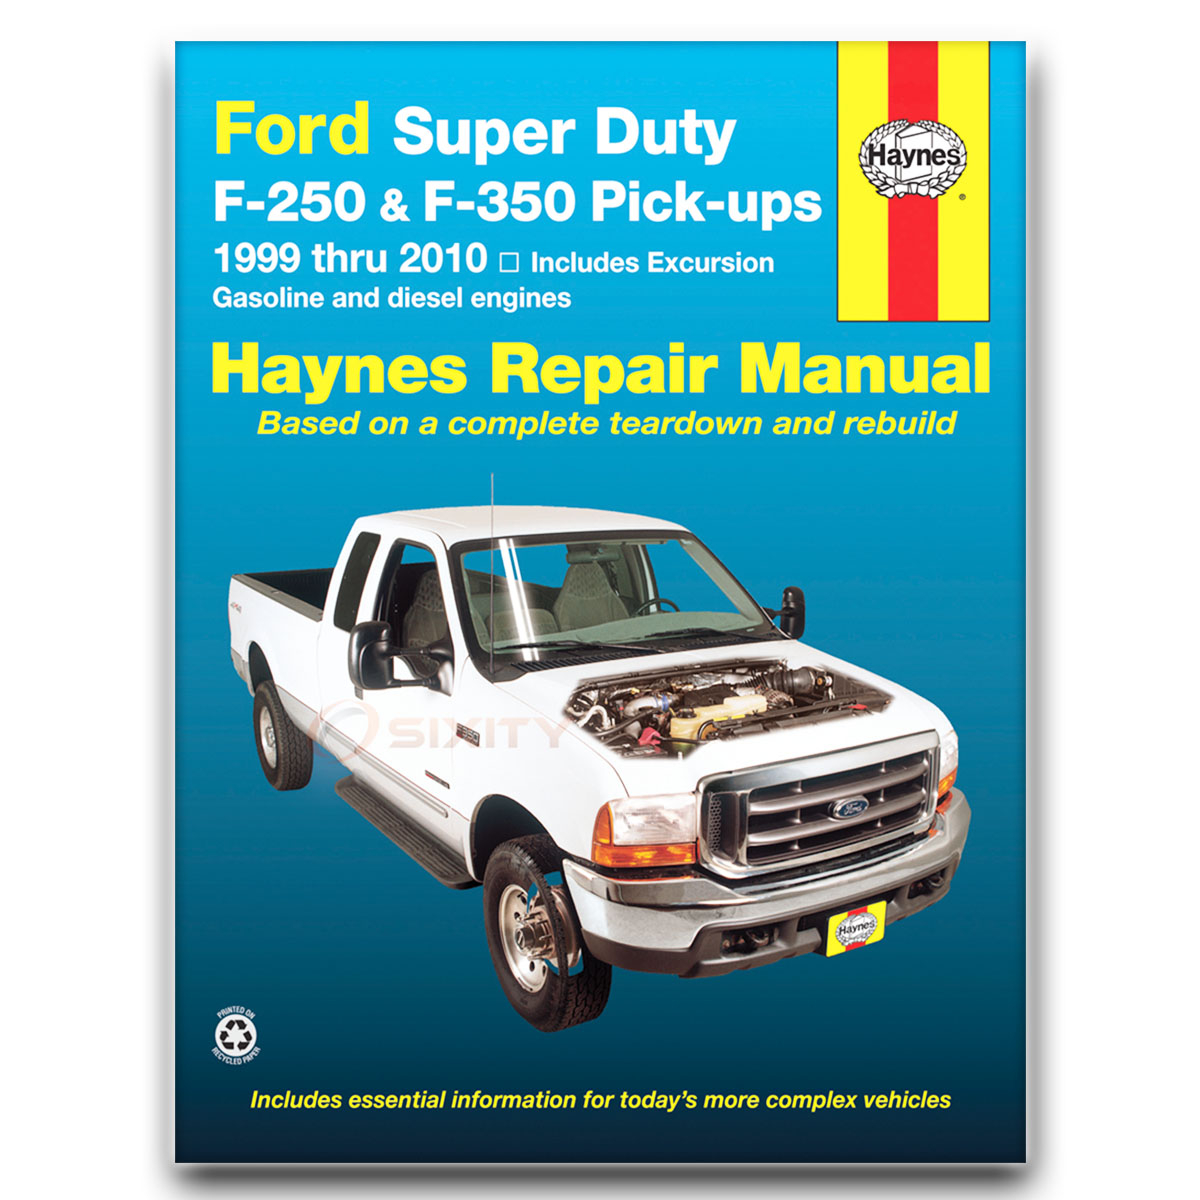 Haynes Repair Manual for Ford F-250 Super Duty Lariat XL FX4 XLT Cabela's vg